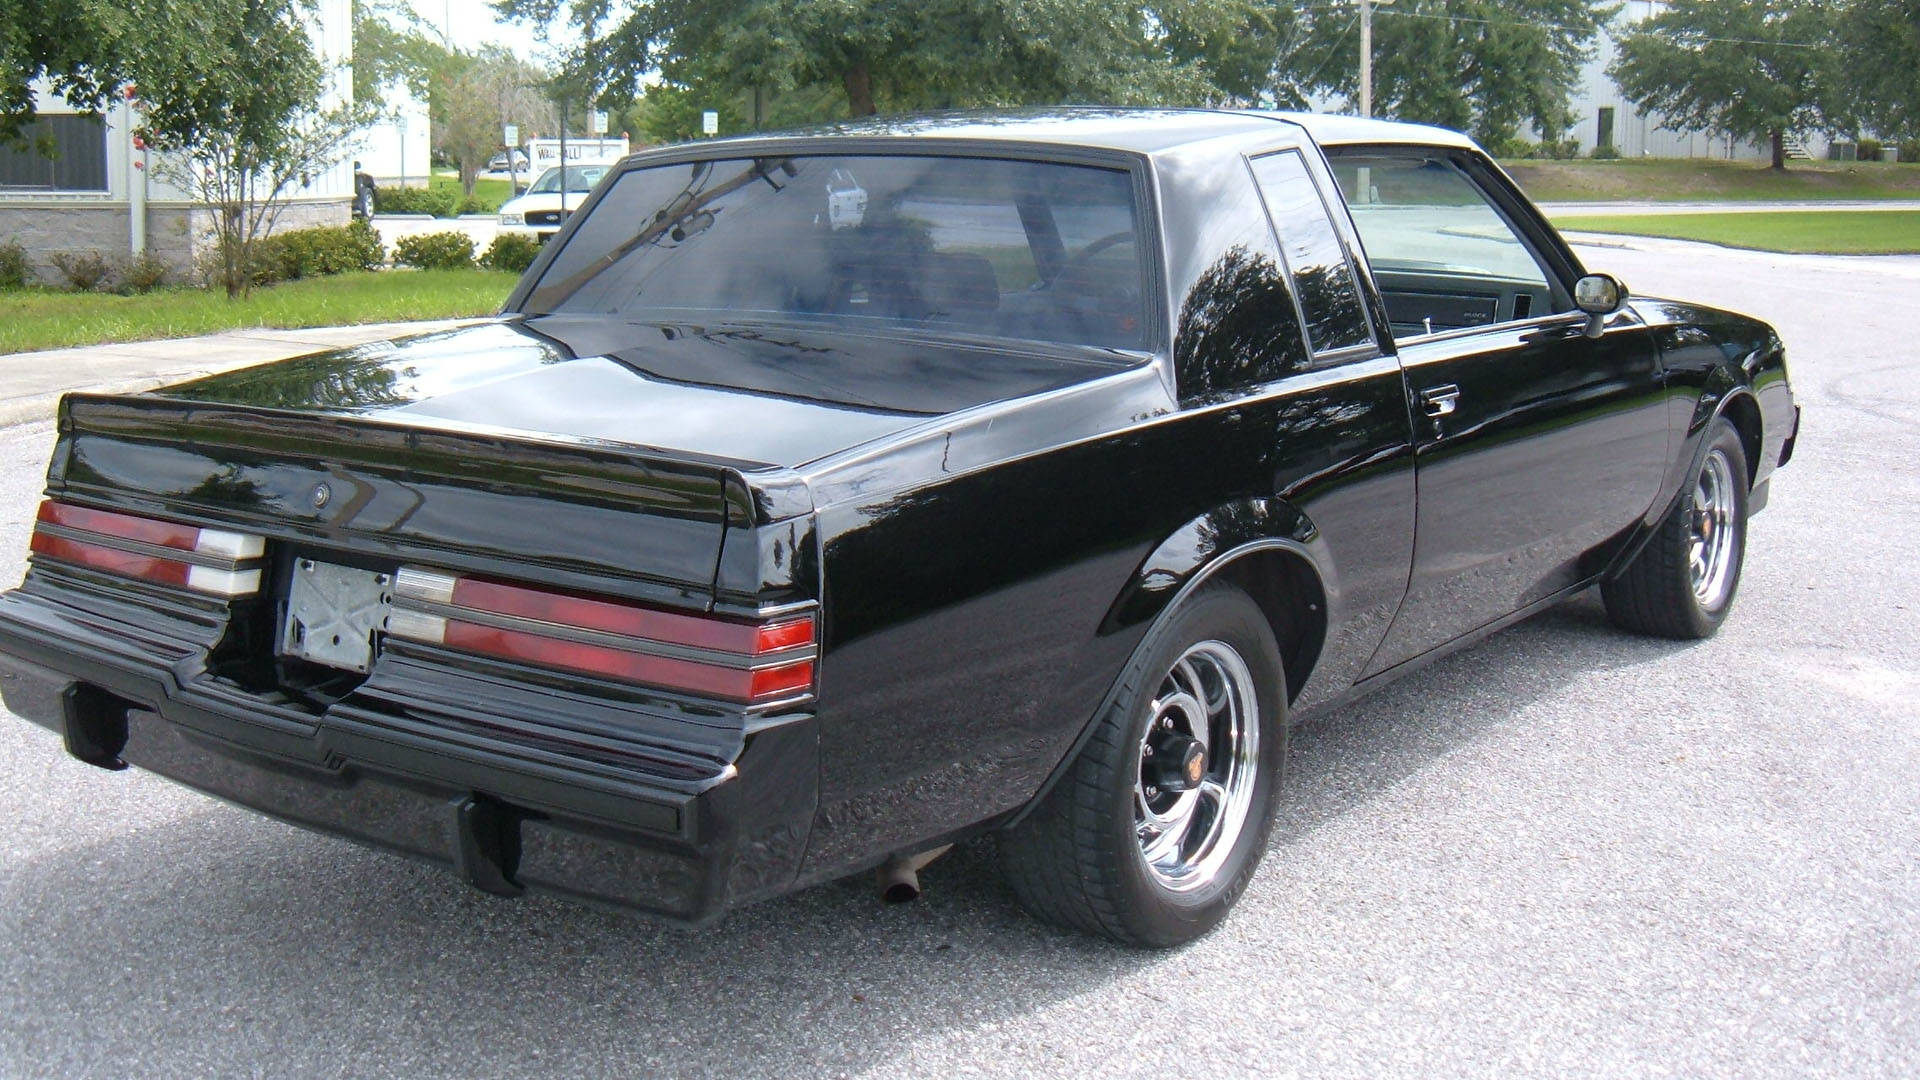 1987 Buick GNX - Muscle Cars Zone!